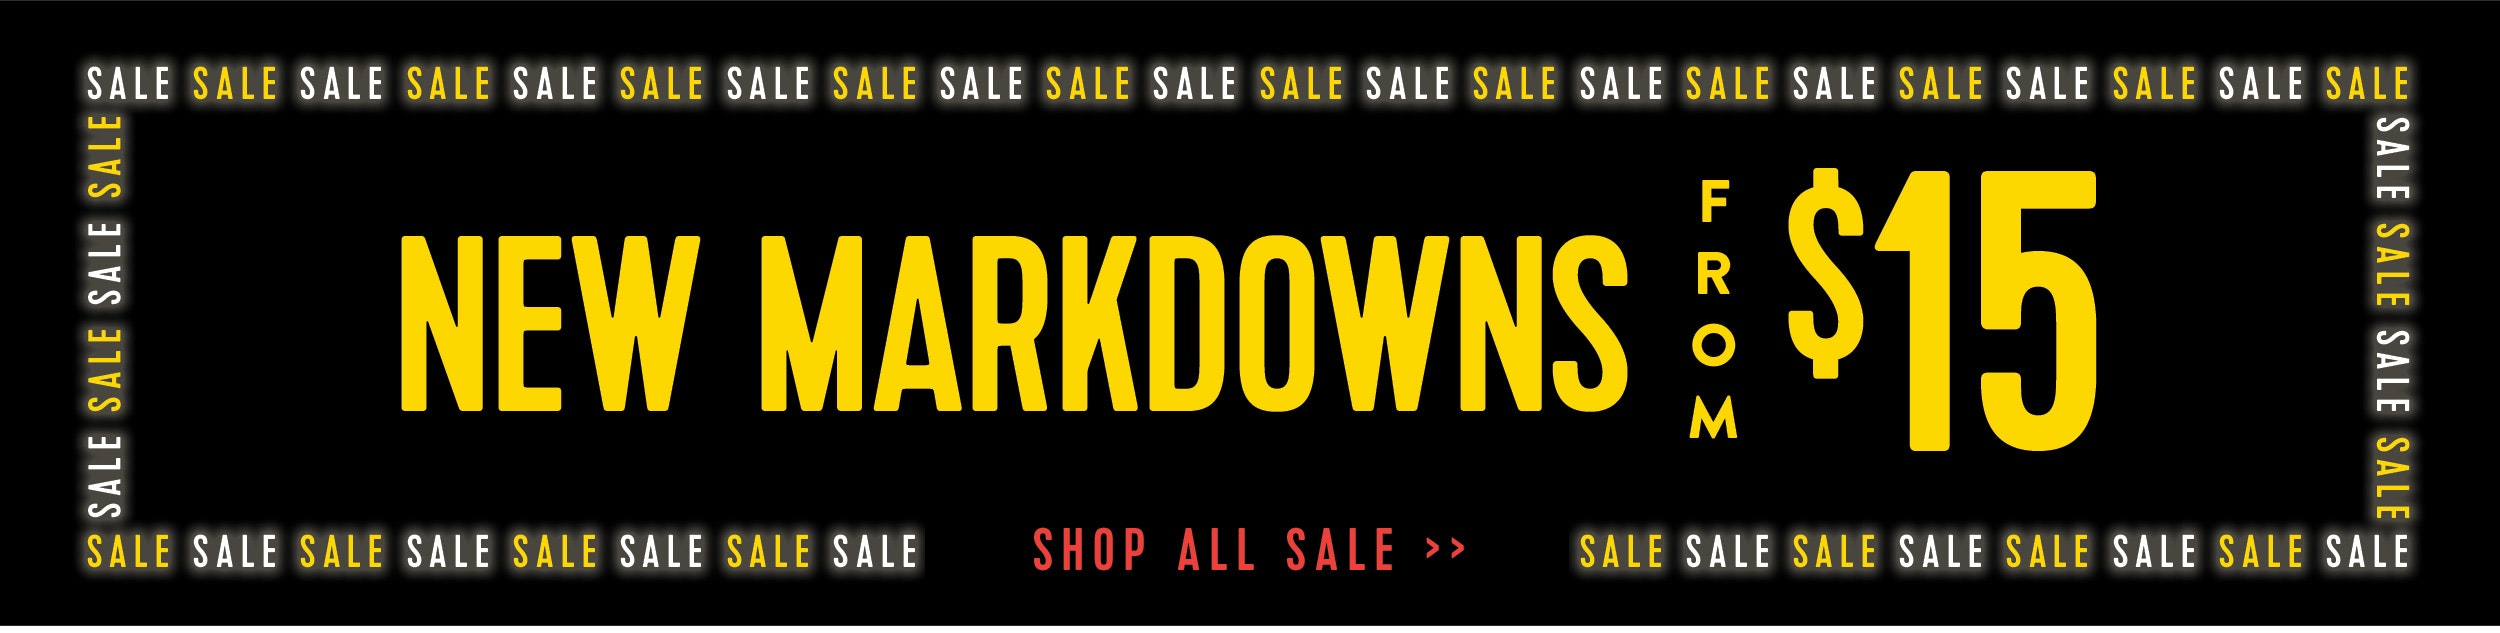 New markdowns from $15